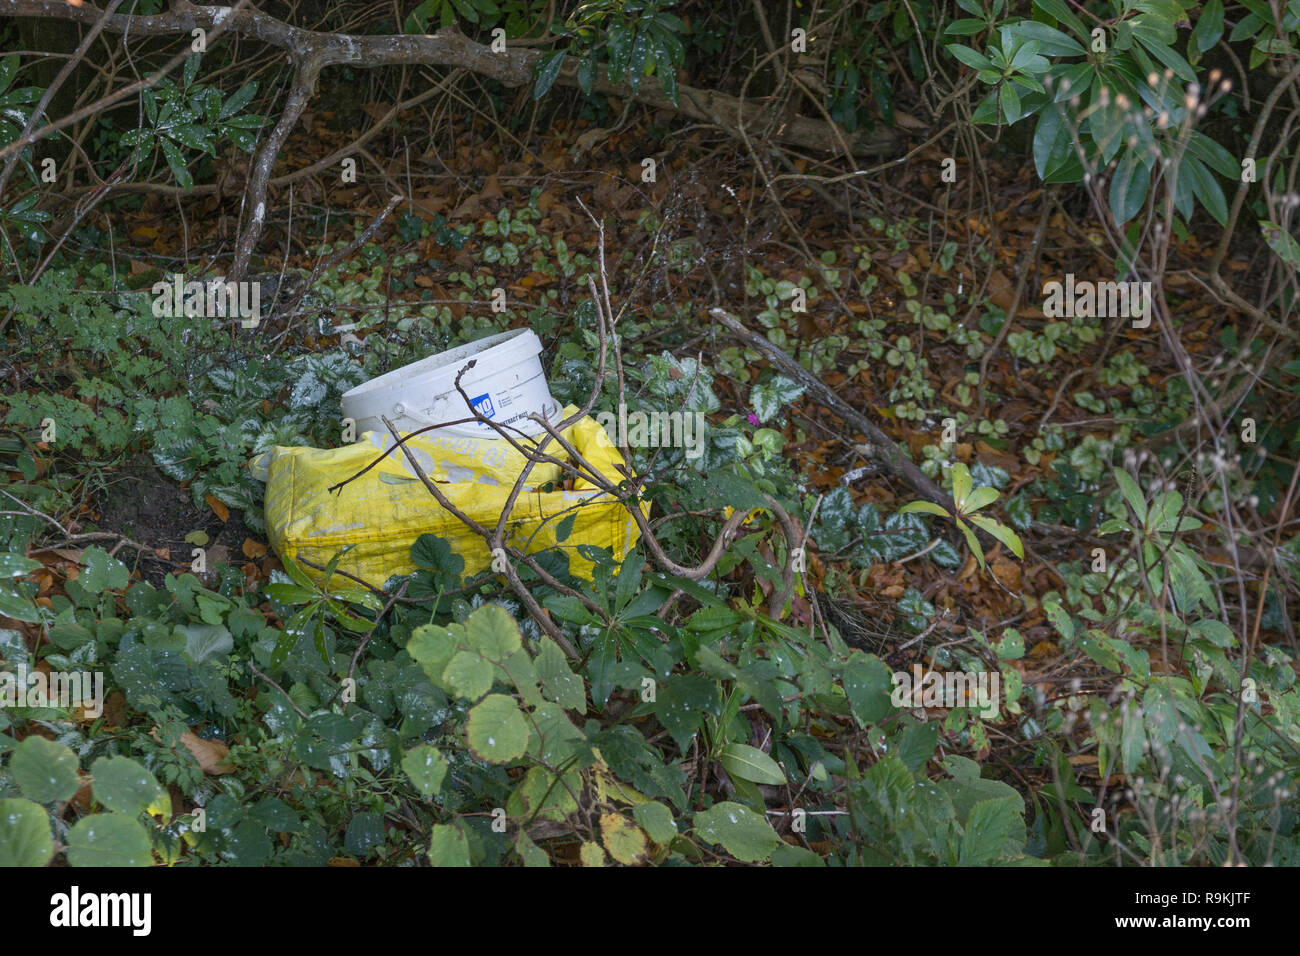 Plastic decorating gear discarded in rural hedgerow. Metaphor on war on plastic, plastic pollution, plastic rubbish. Stock Photo